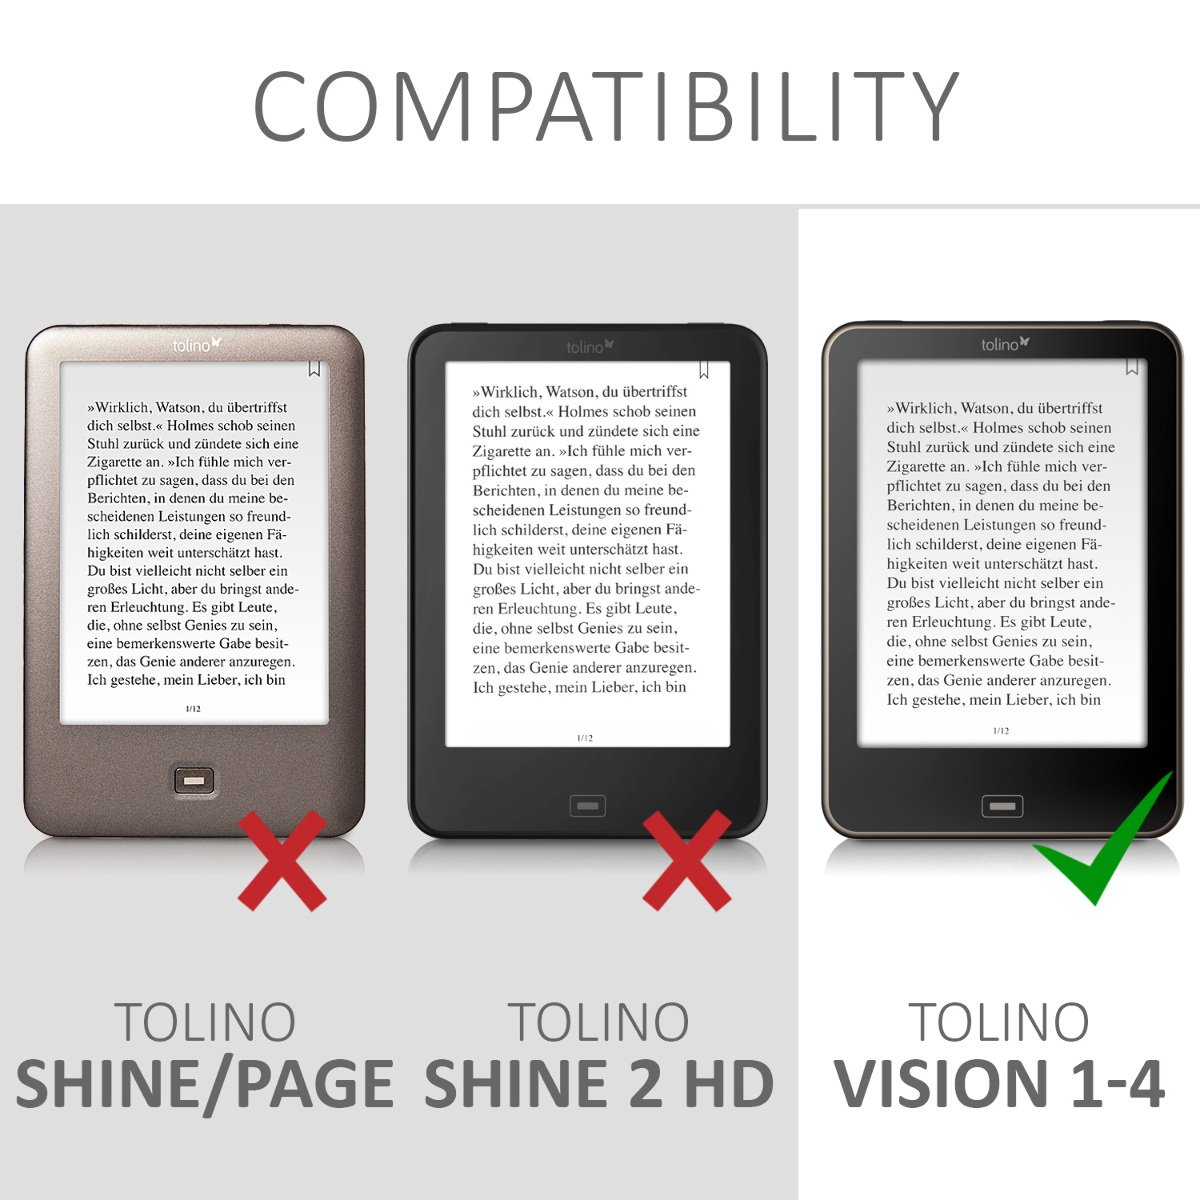 kwmobile Cover for Tolino Vision 1/2 / 3/4 HD - Case with Built-in Hand Strap and Stand in Black by kwmobile (Image #7)